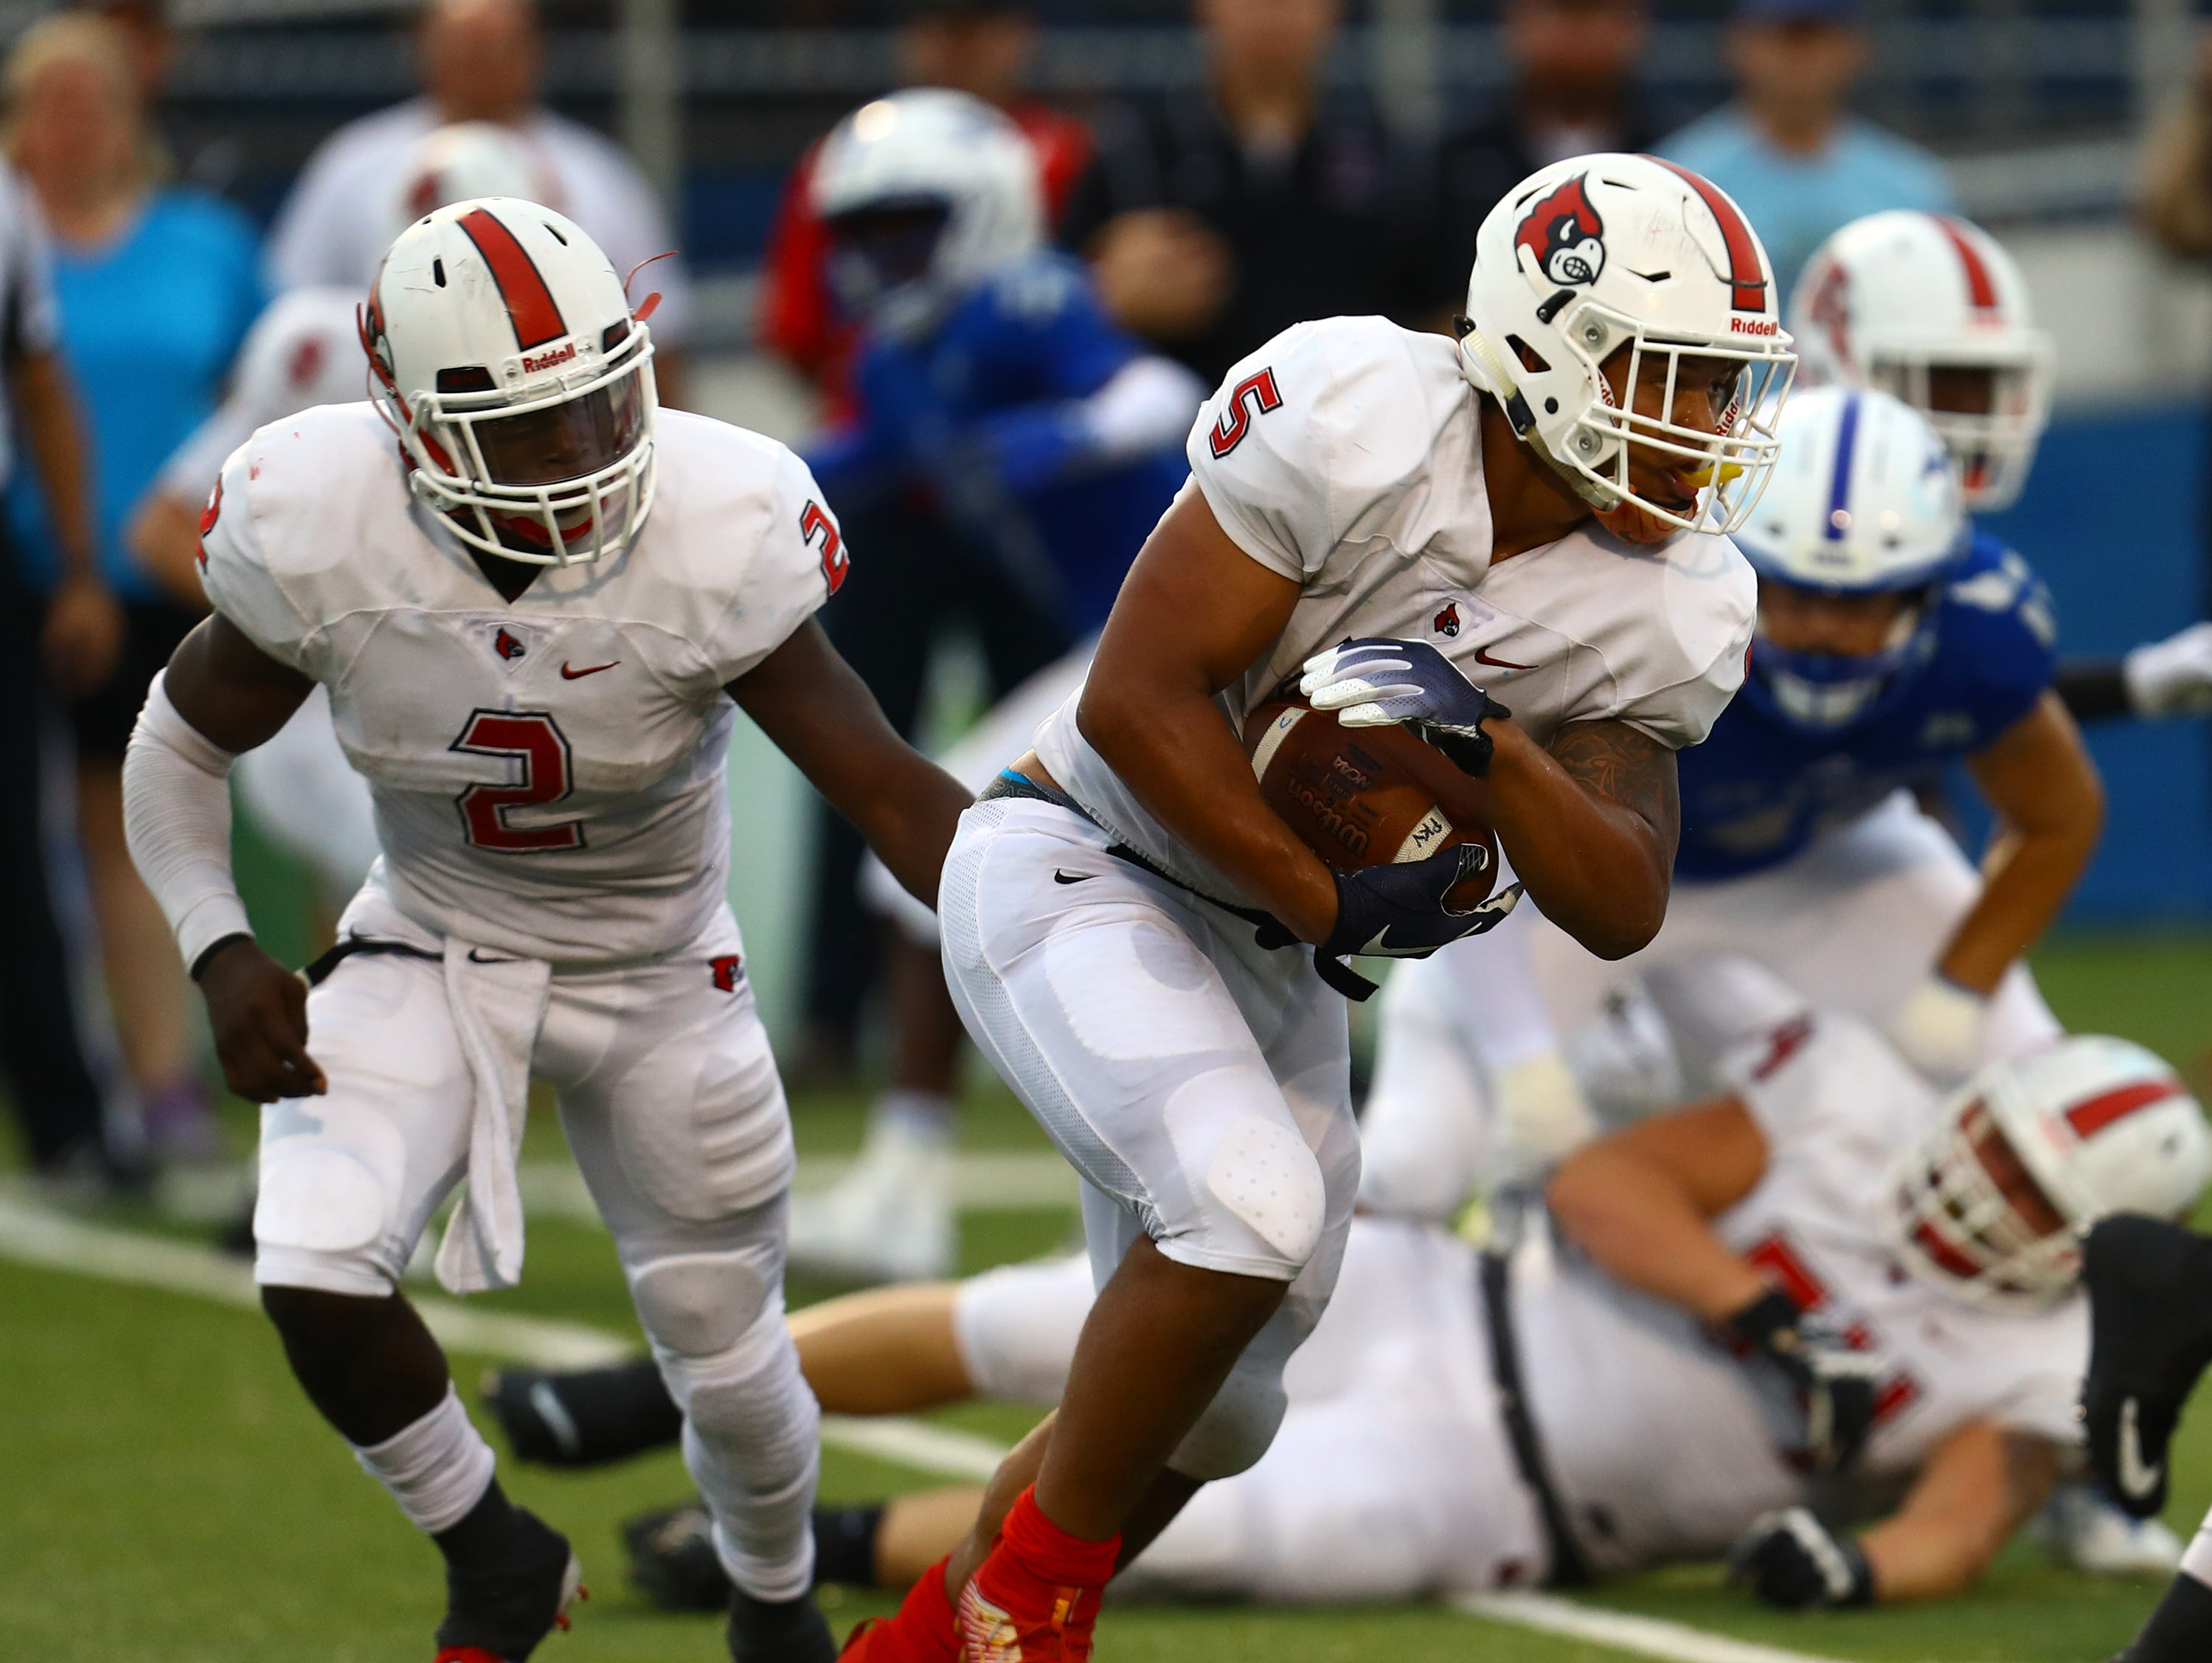 Colerain running back Ivan Pace Jr. runs the ball in the game between the Colerain Cardinals and the Saint Xavier Bombers at Saint Xavier High School Aug. 31.